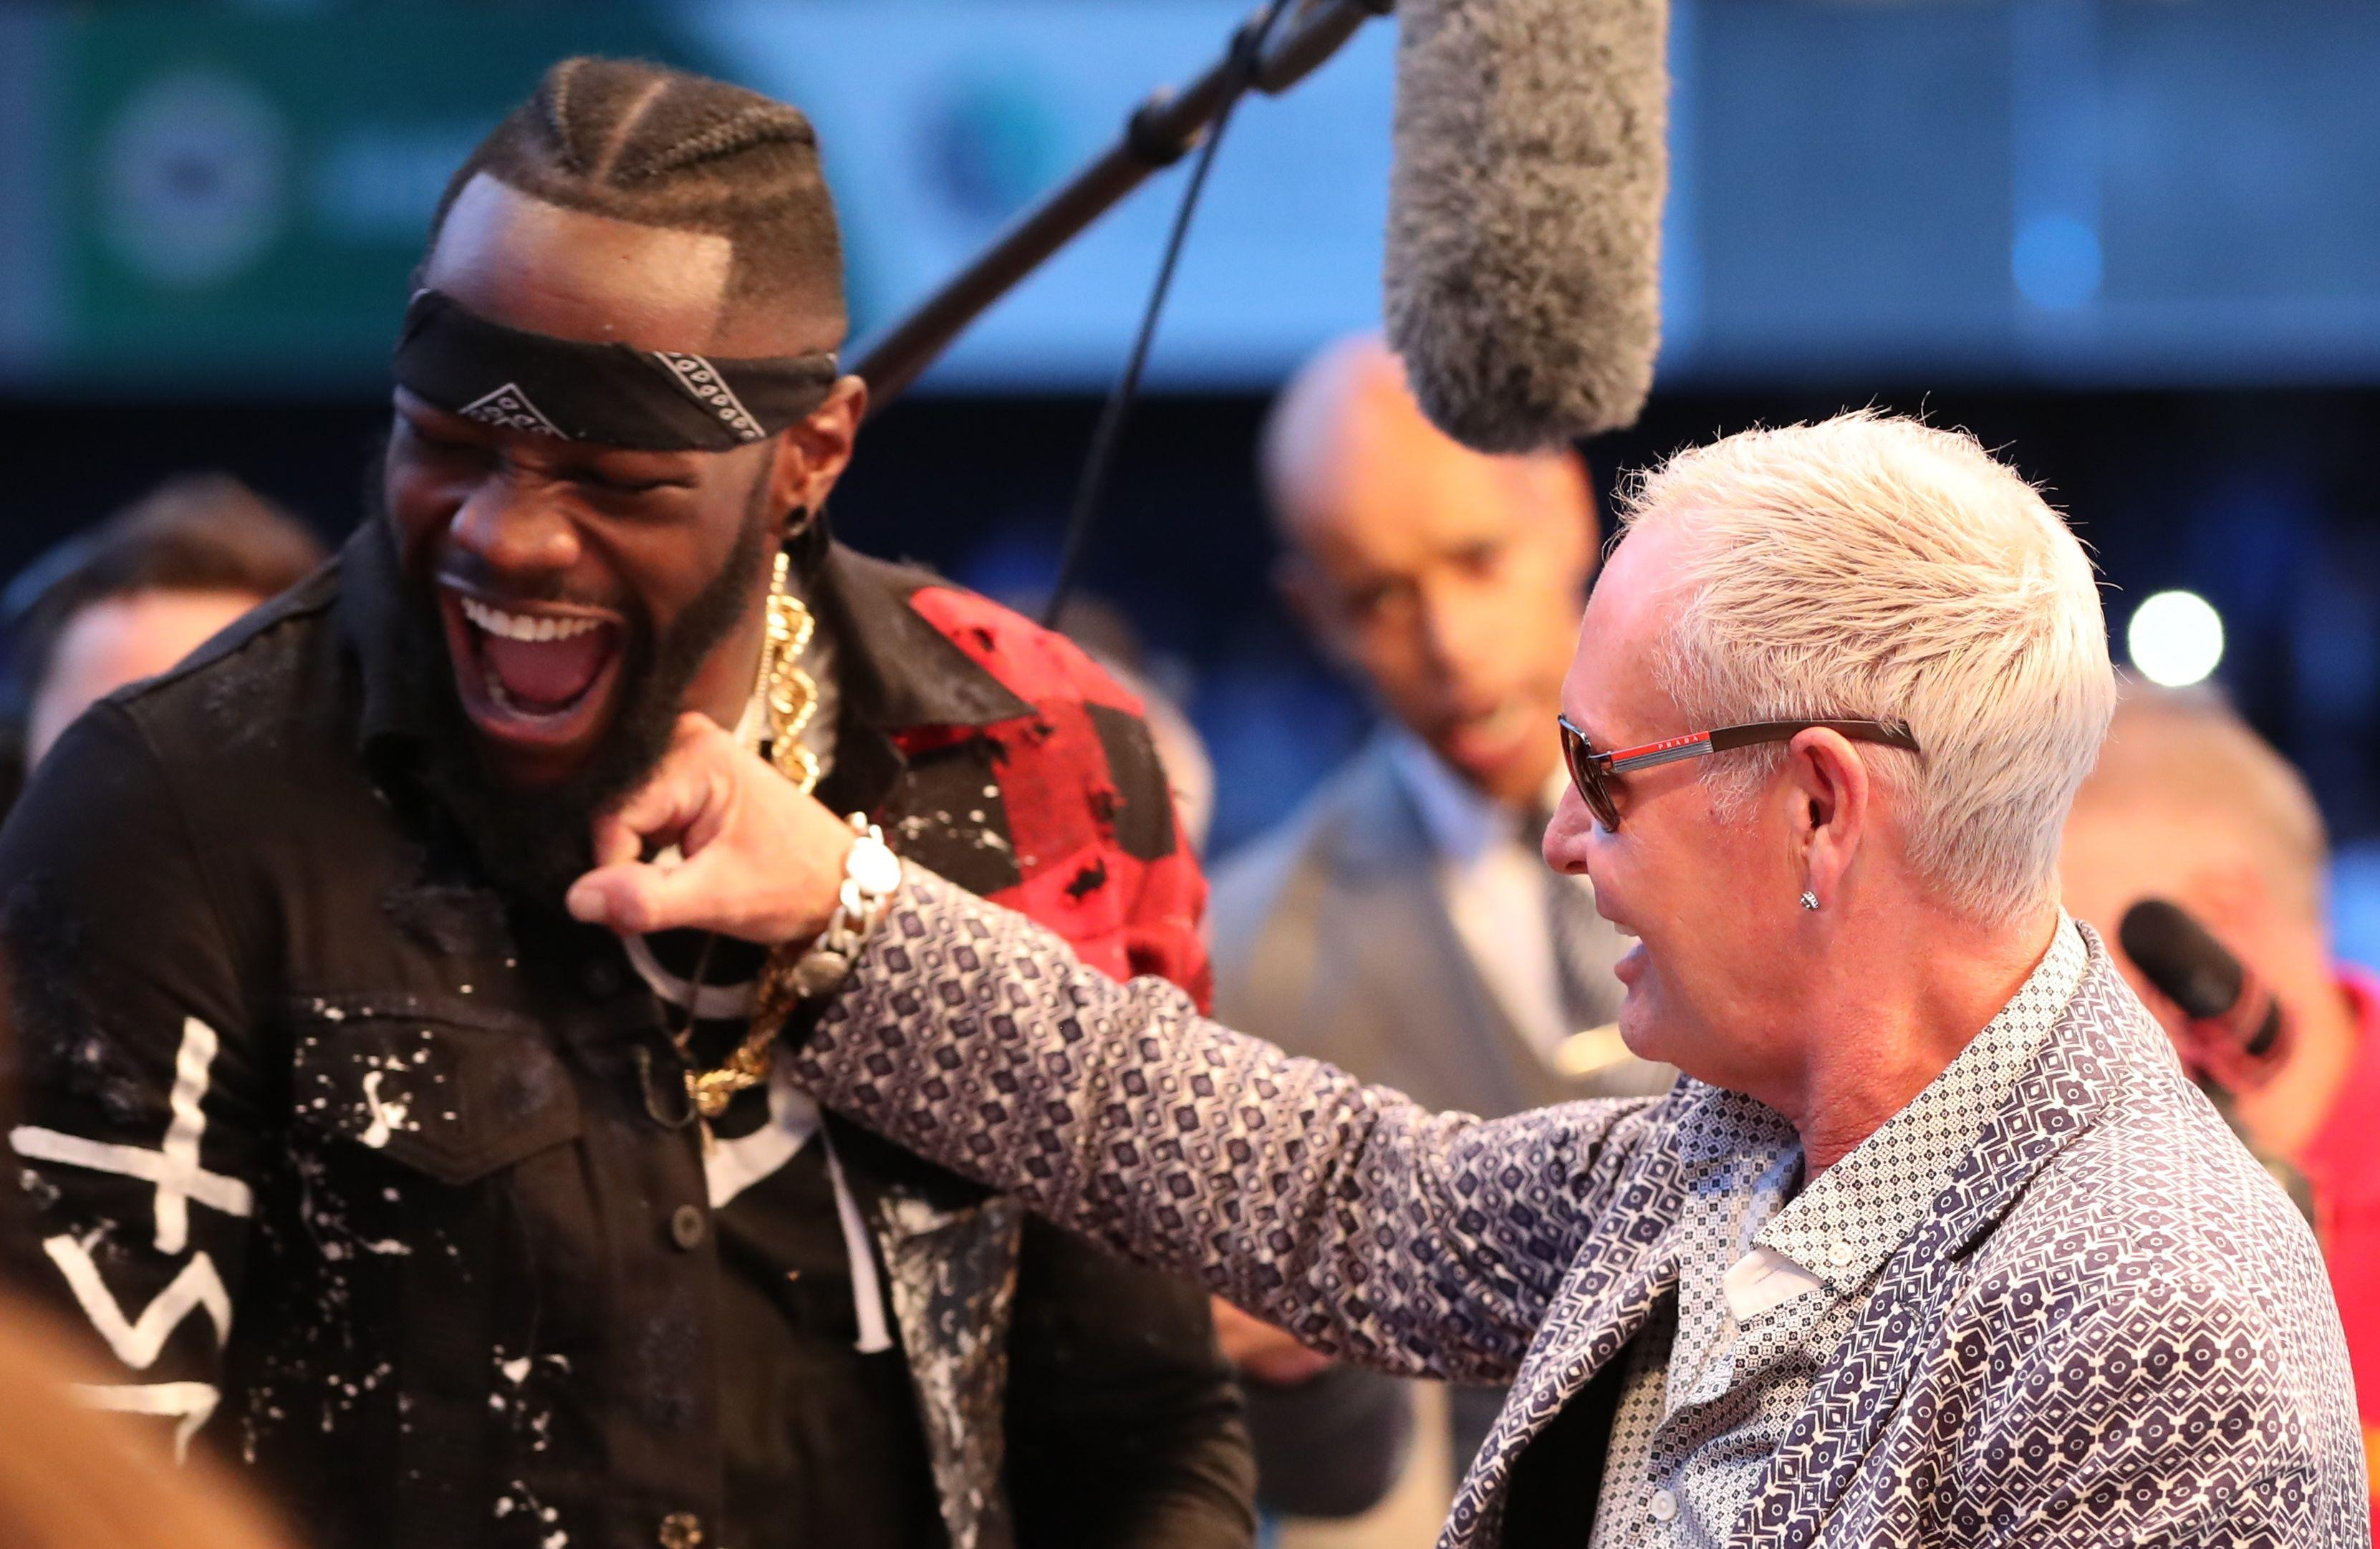 Gazza is a boxing fan and recently met WBC heavyweight king Deontay Wilder